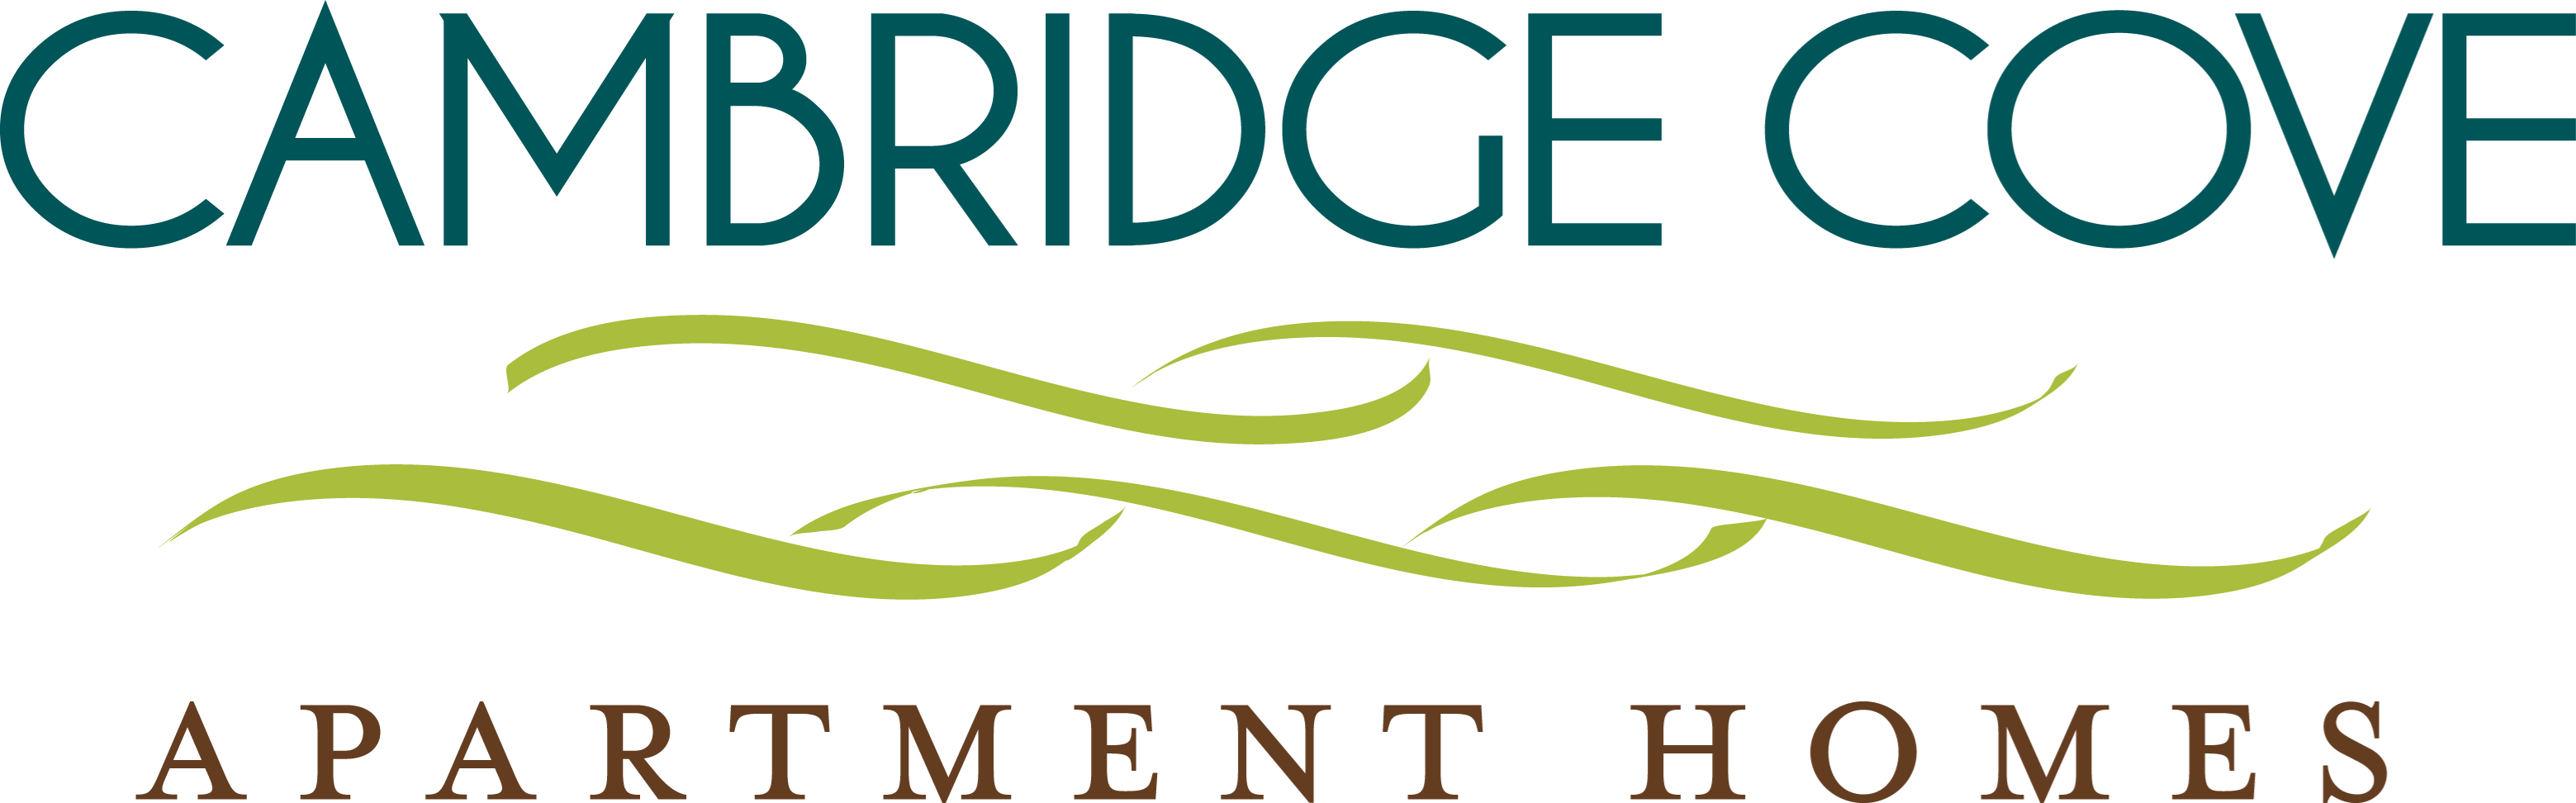 Cambridge Cove Apartments for rent in Lakeland, FL. Make this community your new home or visit other Concord Rents communities at ConcordRents.com. Logo